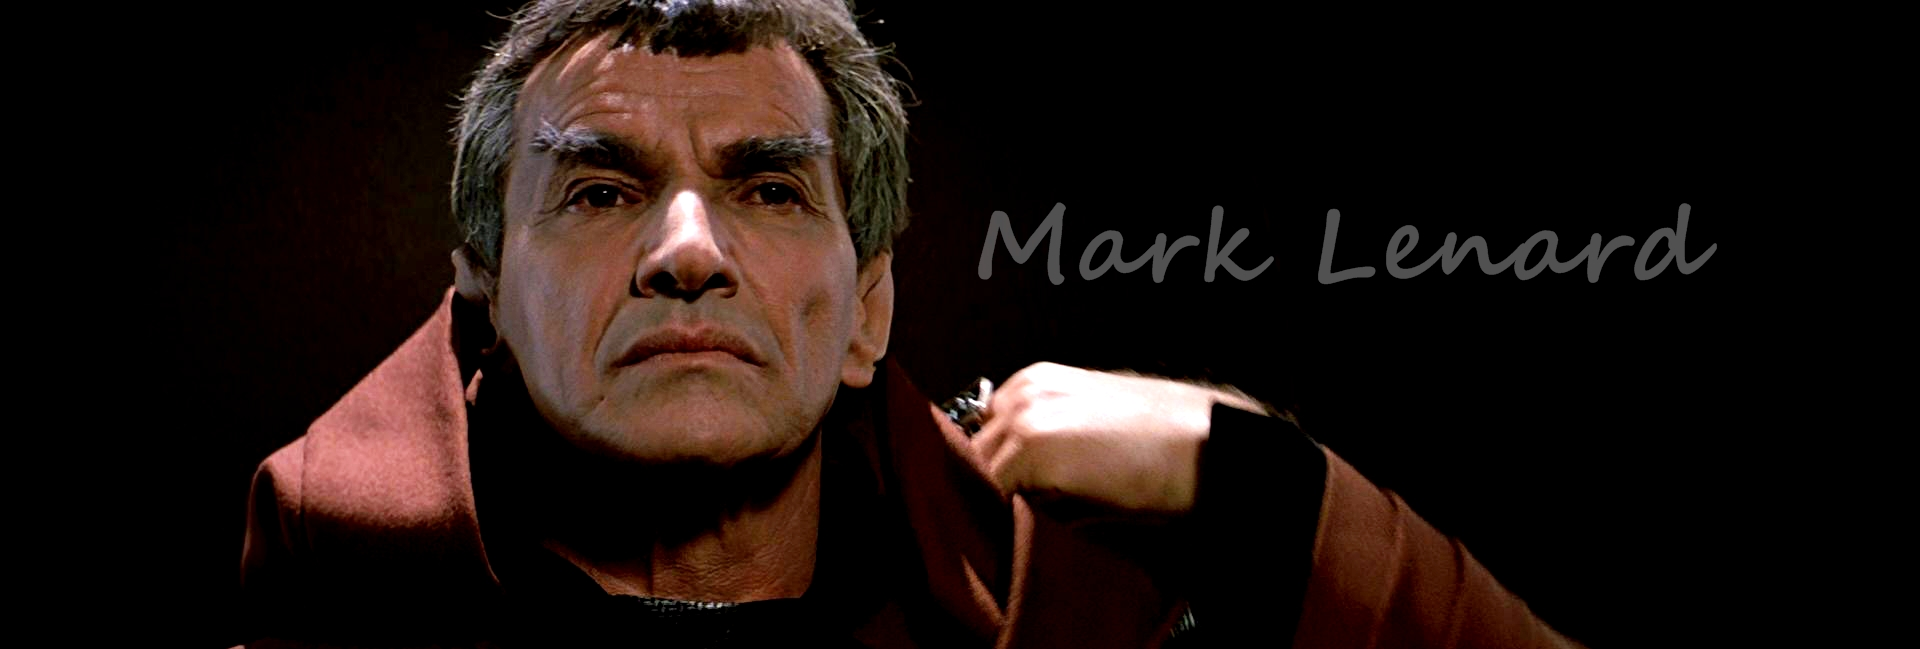 mark lenard obituarymark lenard star trek, mark lenard imdb, mark lenard mortgage, mark lenard obituary, mark lenard mission impossible, mark lenard find a grave, mark lenard grave, mark lenard planet of the apes, mark lenard interview, mark lenard urko, mark lenard appraiser, mark lenard facebook